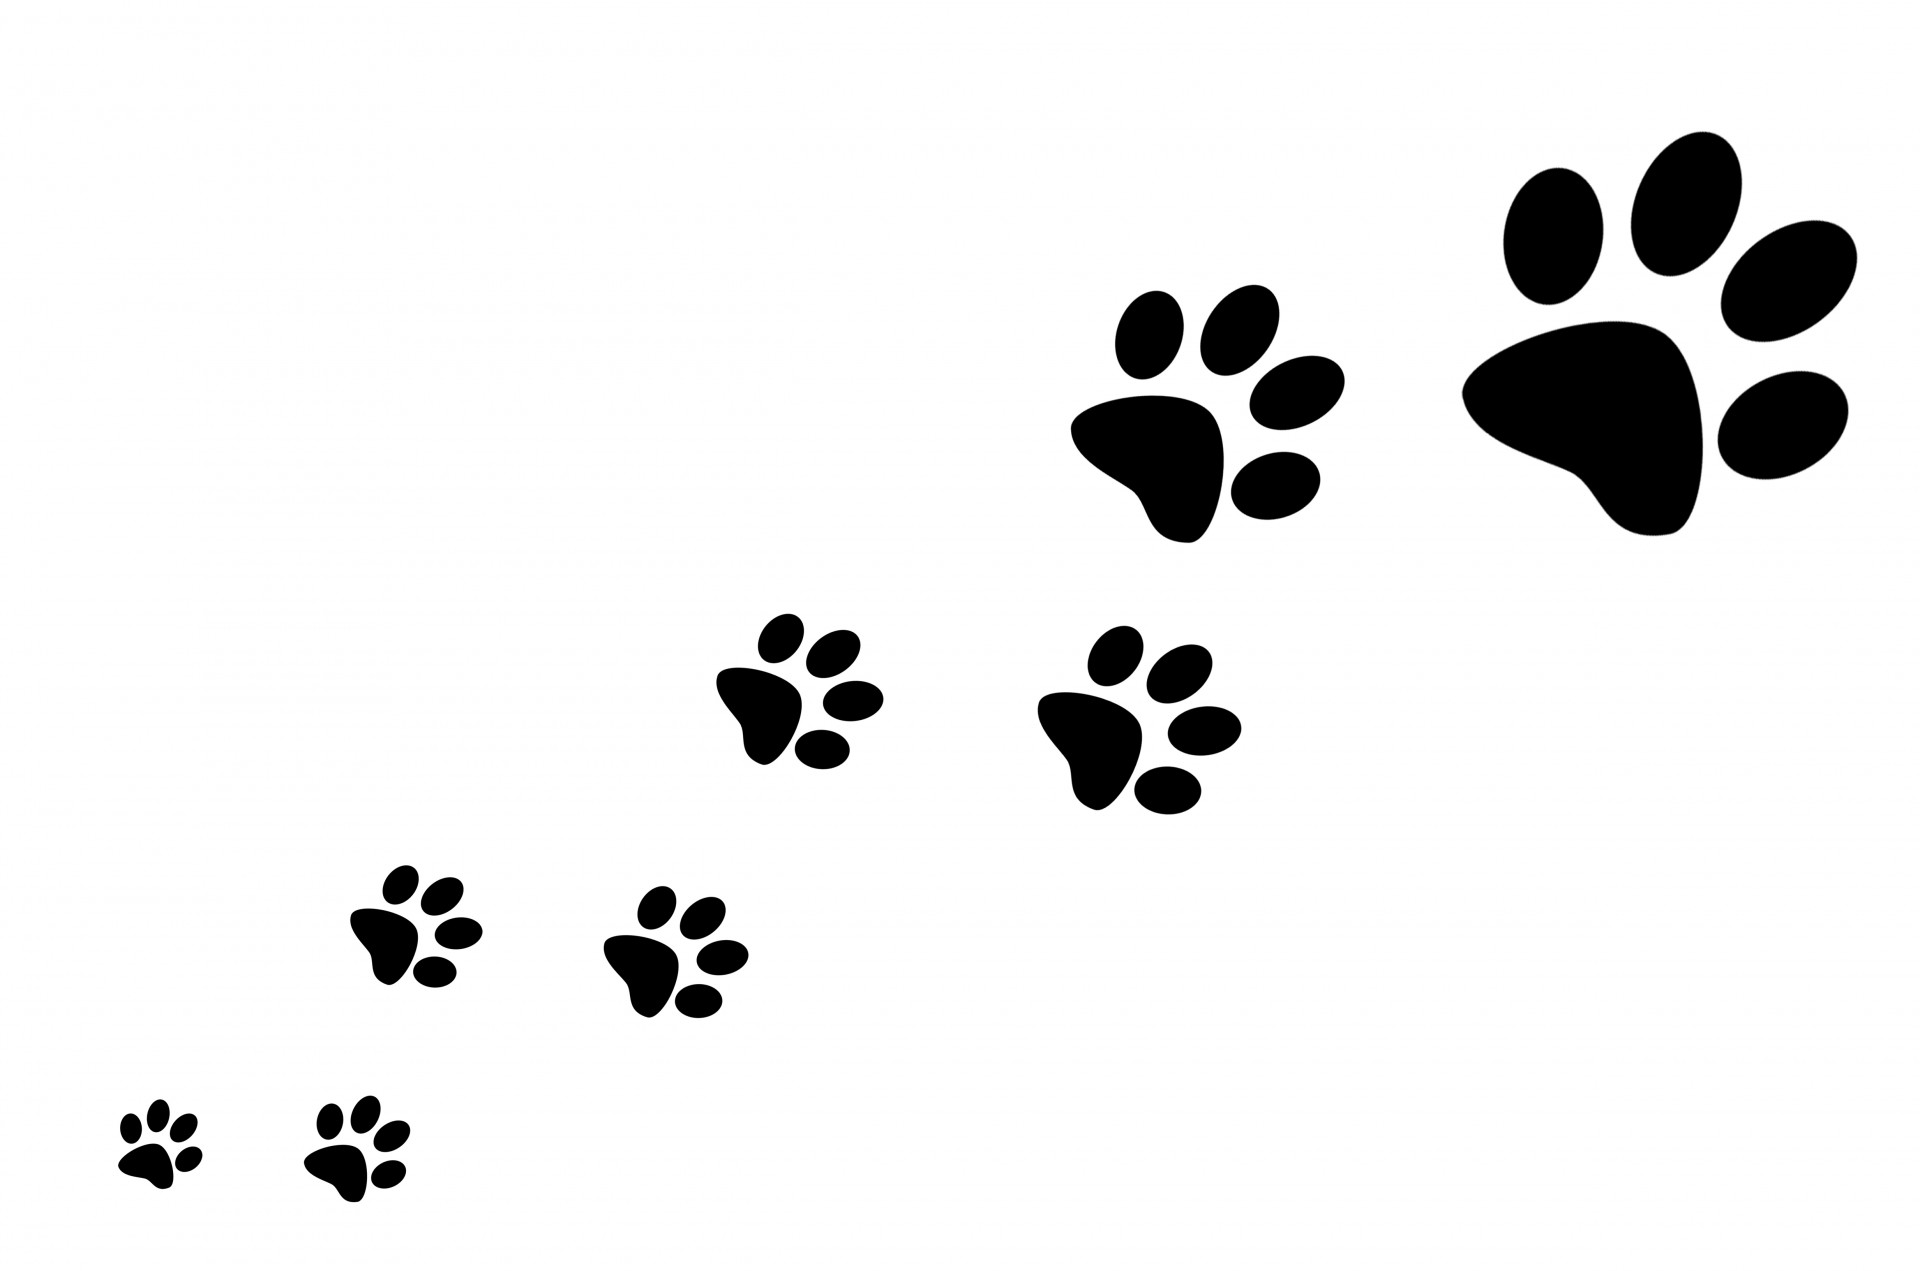 how to get paw prints of dog